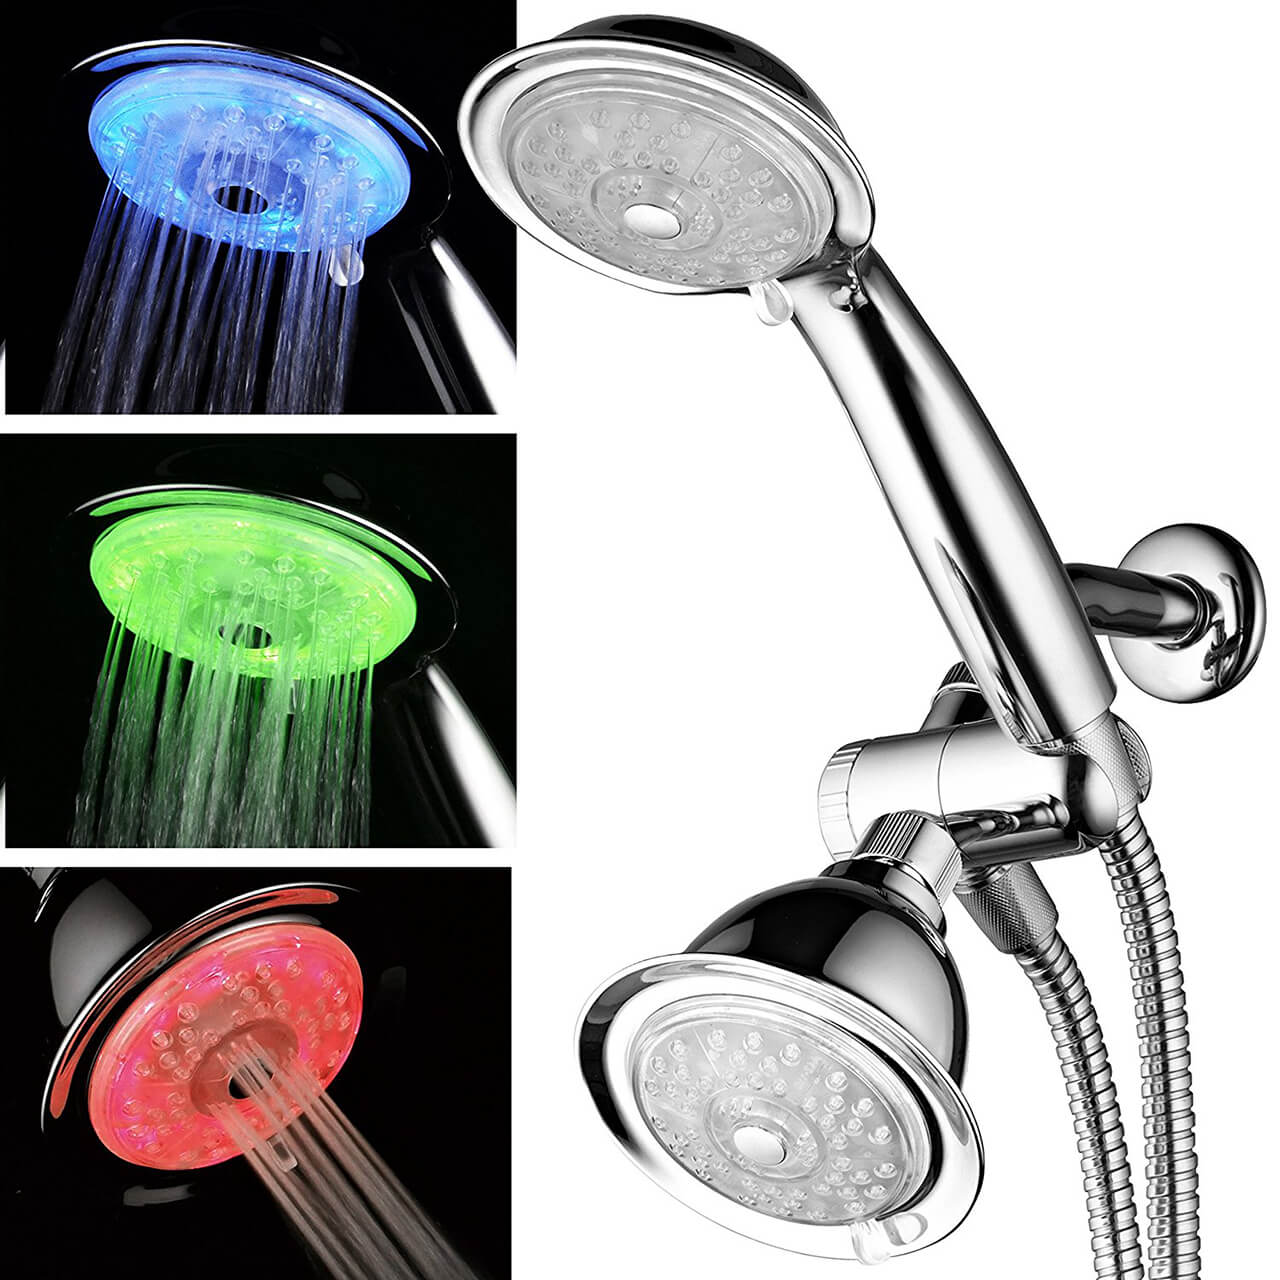 Luminex by PowerSpa 7-Color LED Shower Head